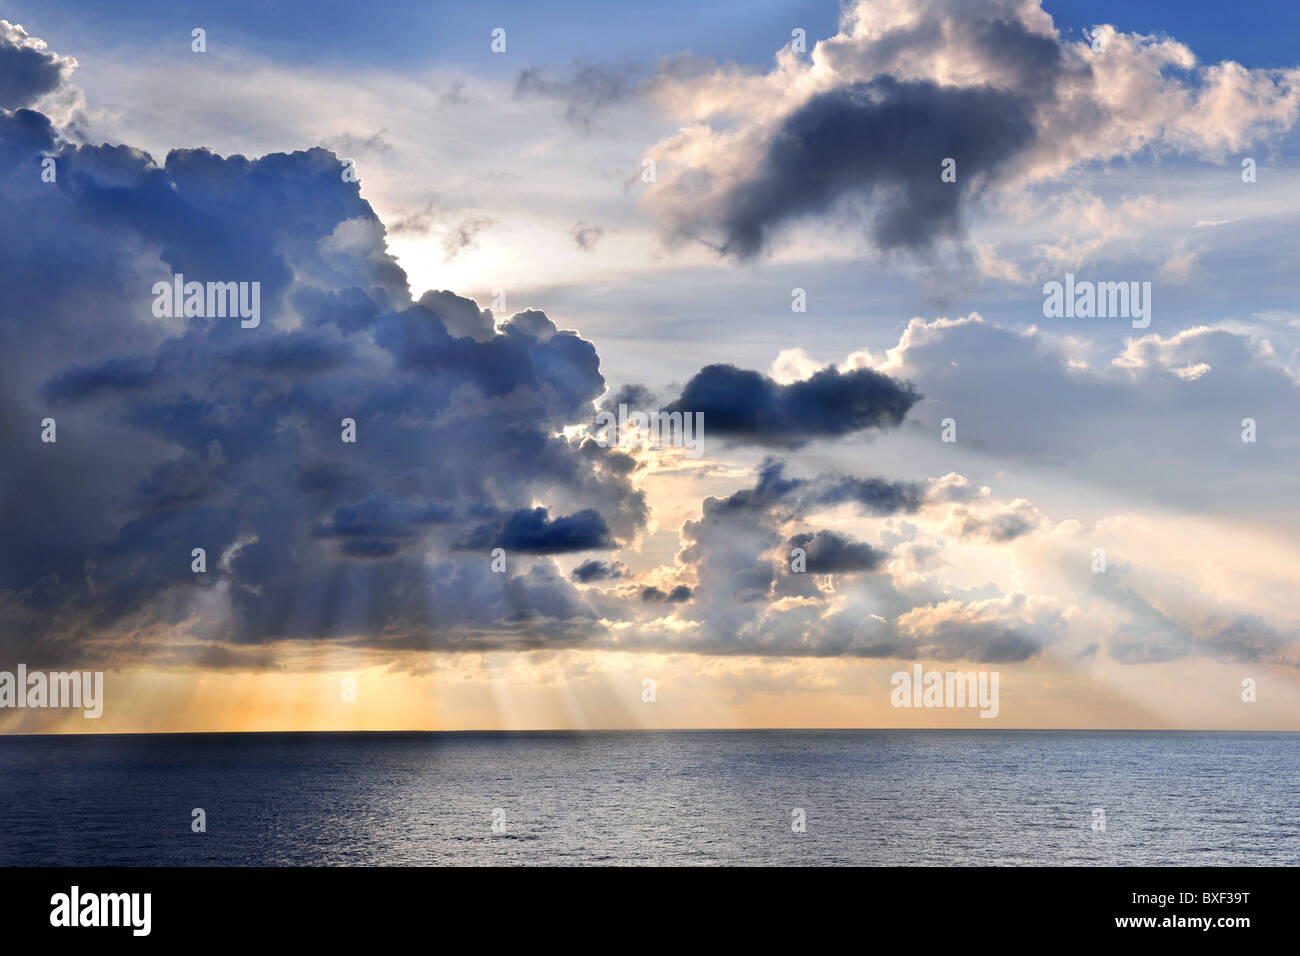 Caribbean sunset at sea with sun rays and clouds - Stock Image